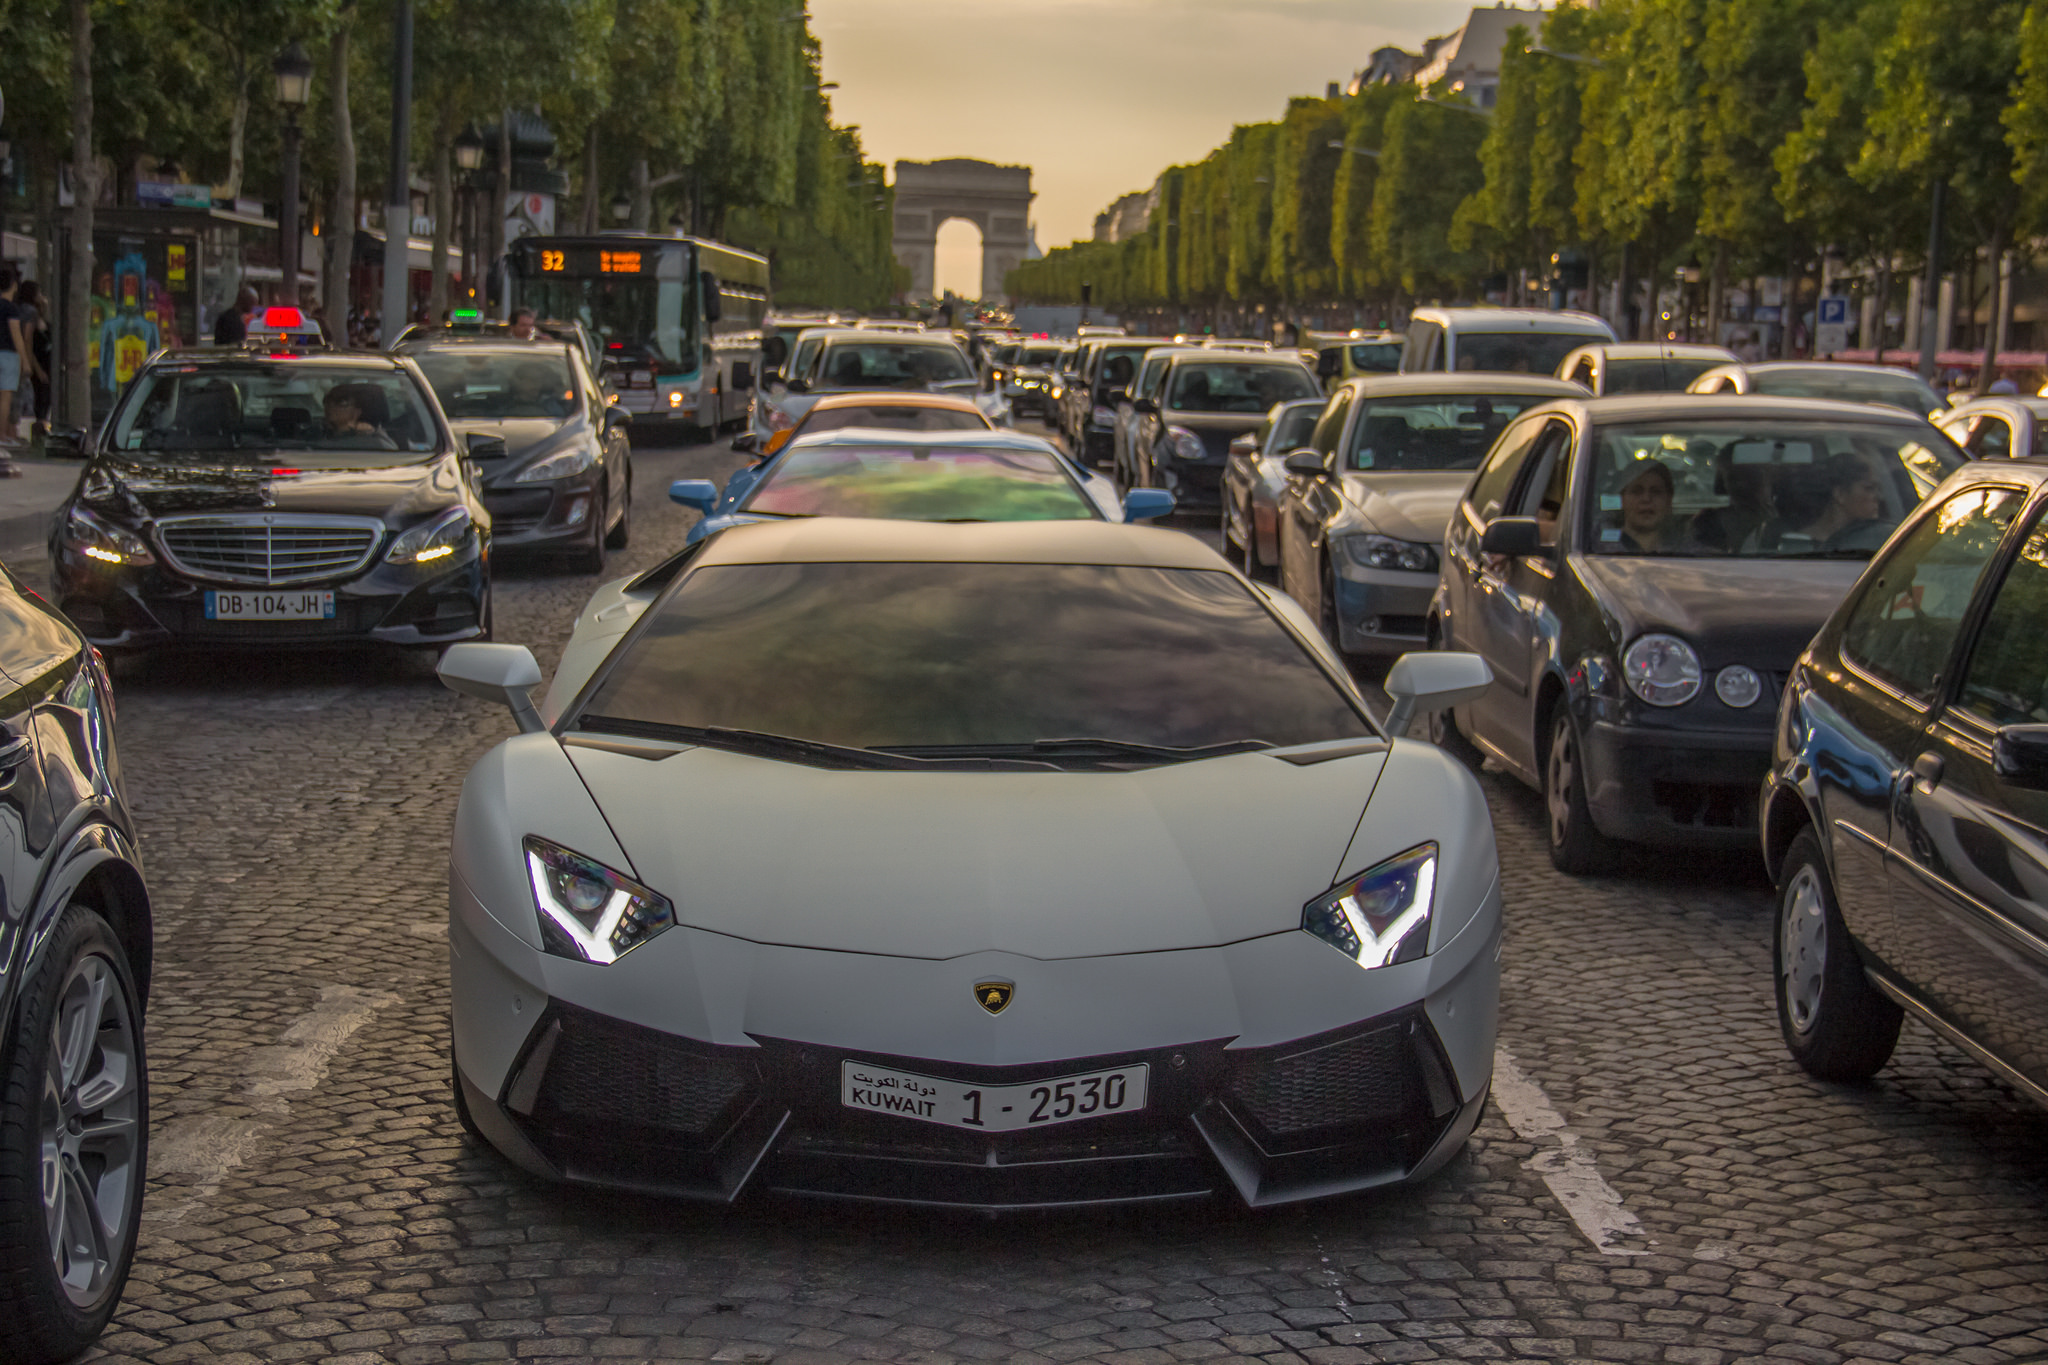 Paris Will Be Having A Car-Free Day